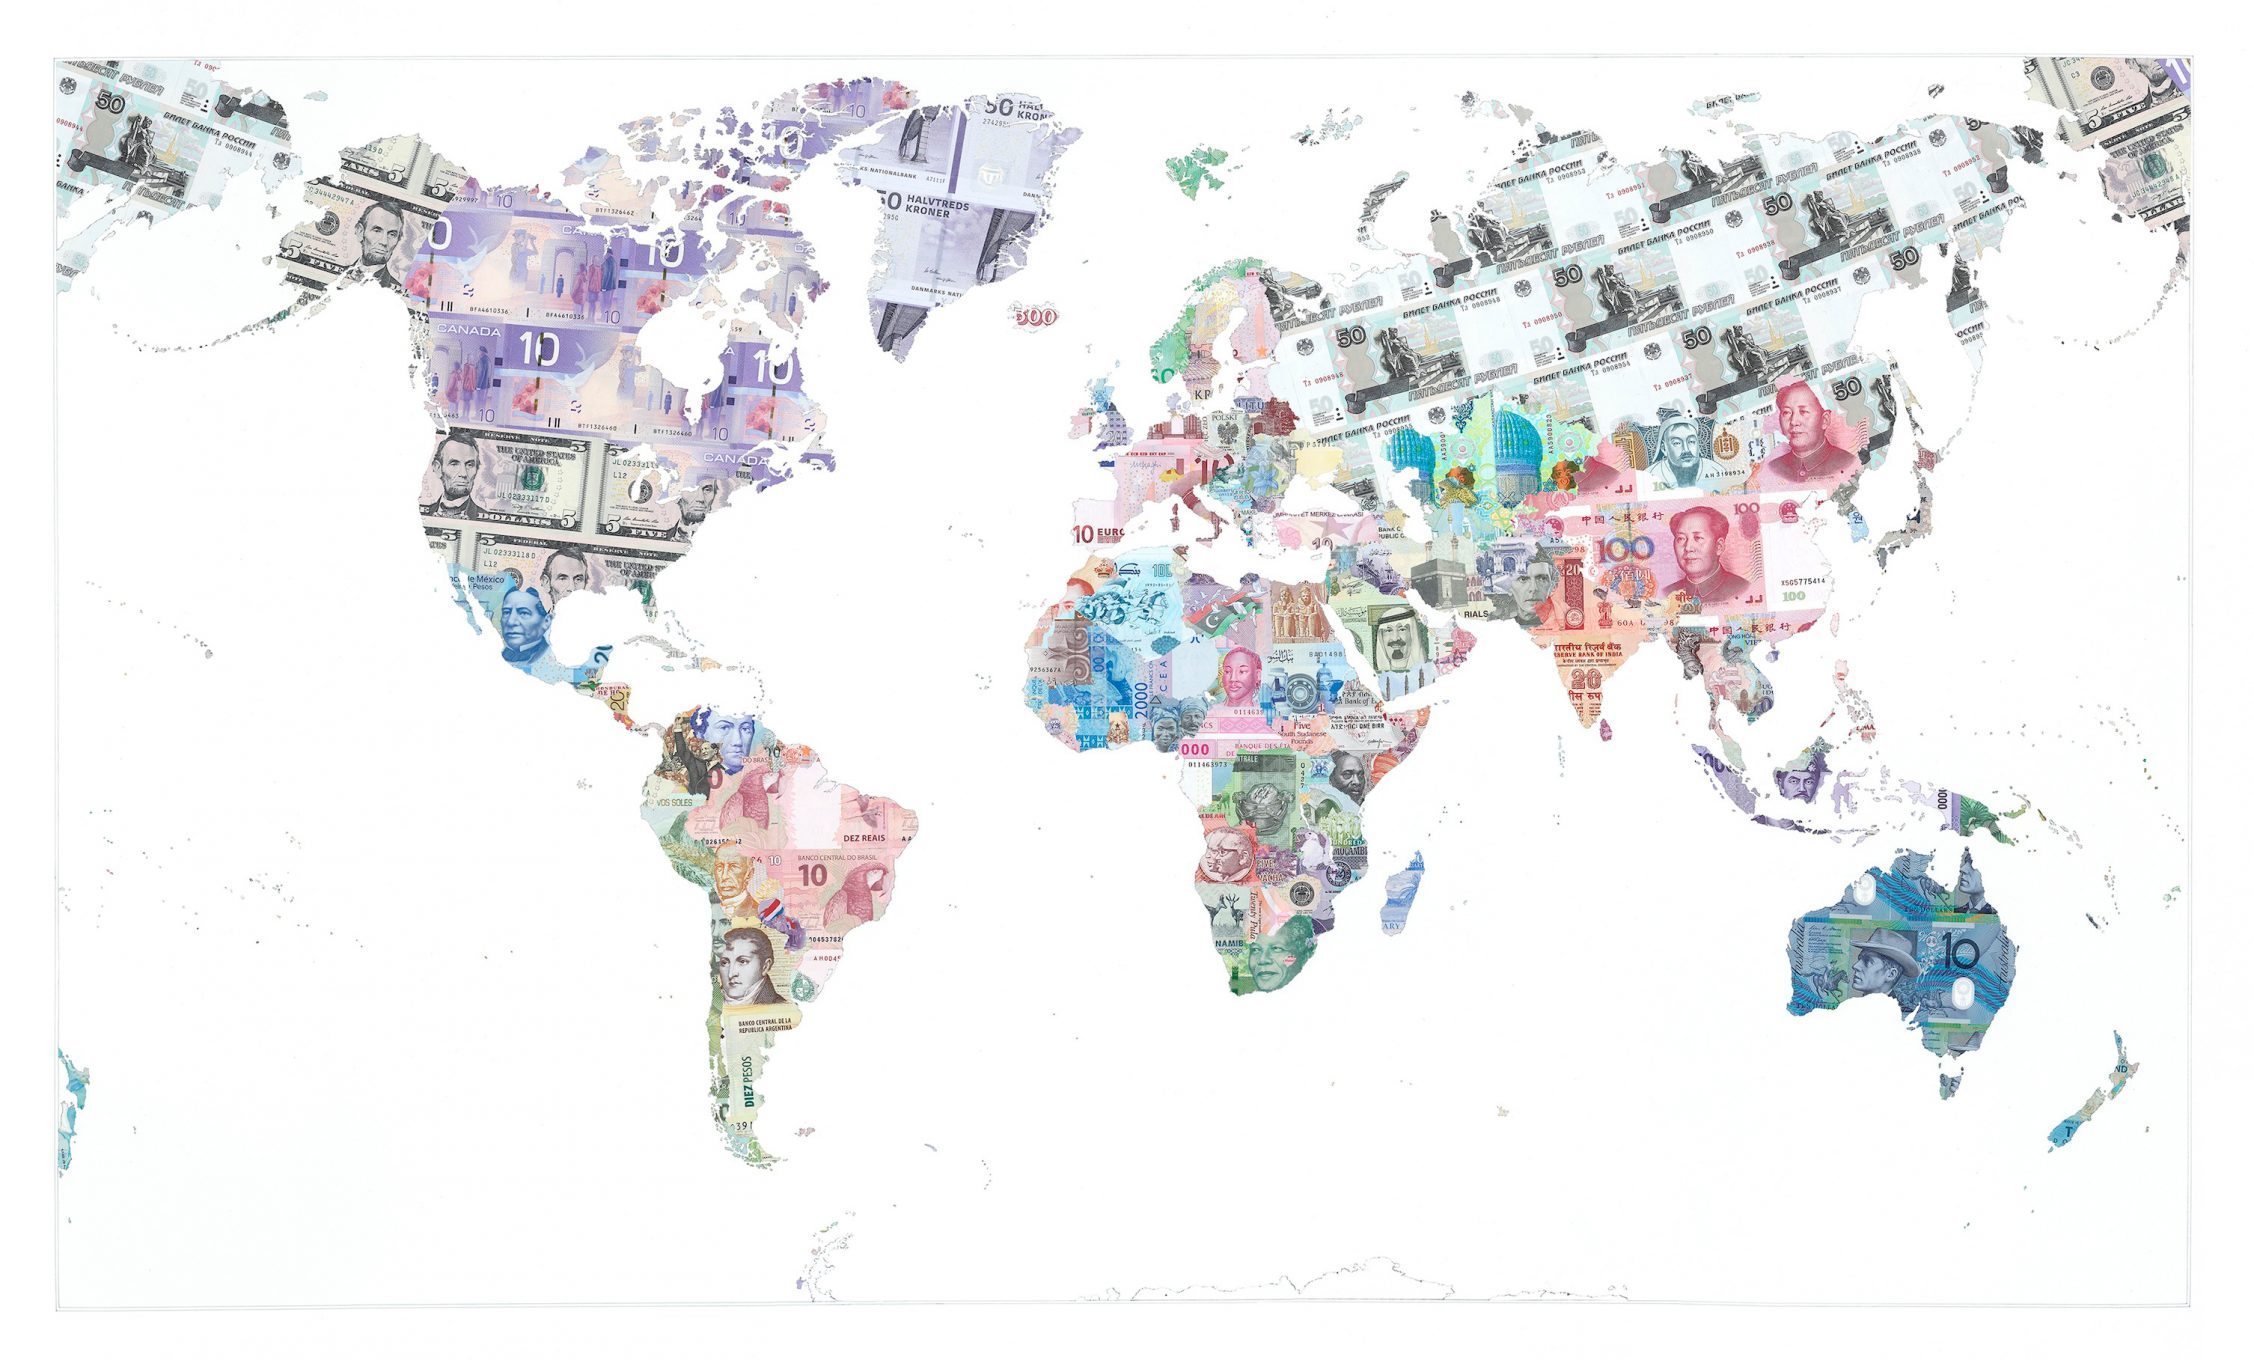 Money maps limited editions justine smith money map of the world 2013 a limited edition money map print by justine smith gumiabroncs Image collections